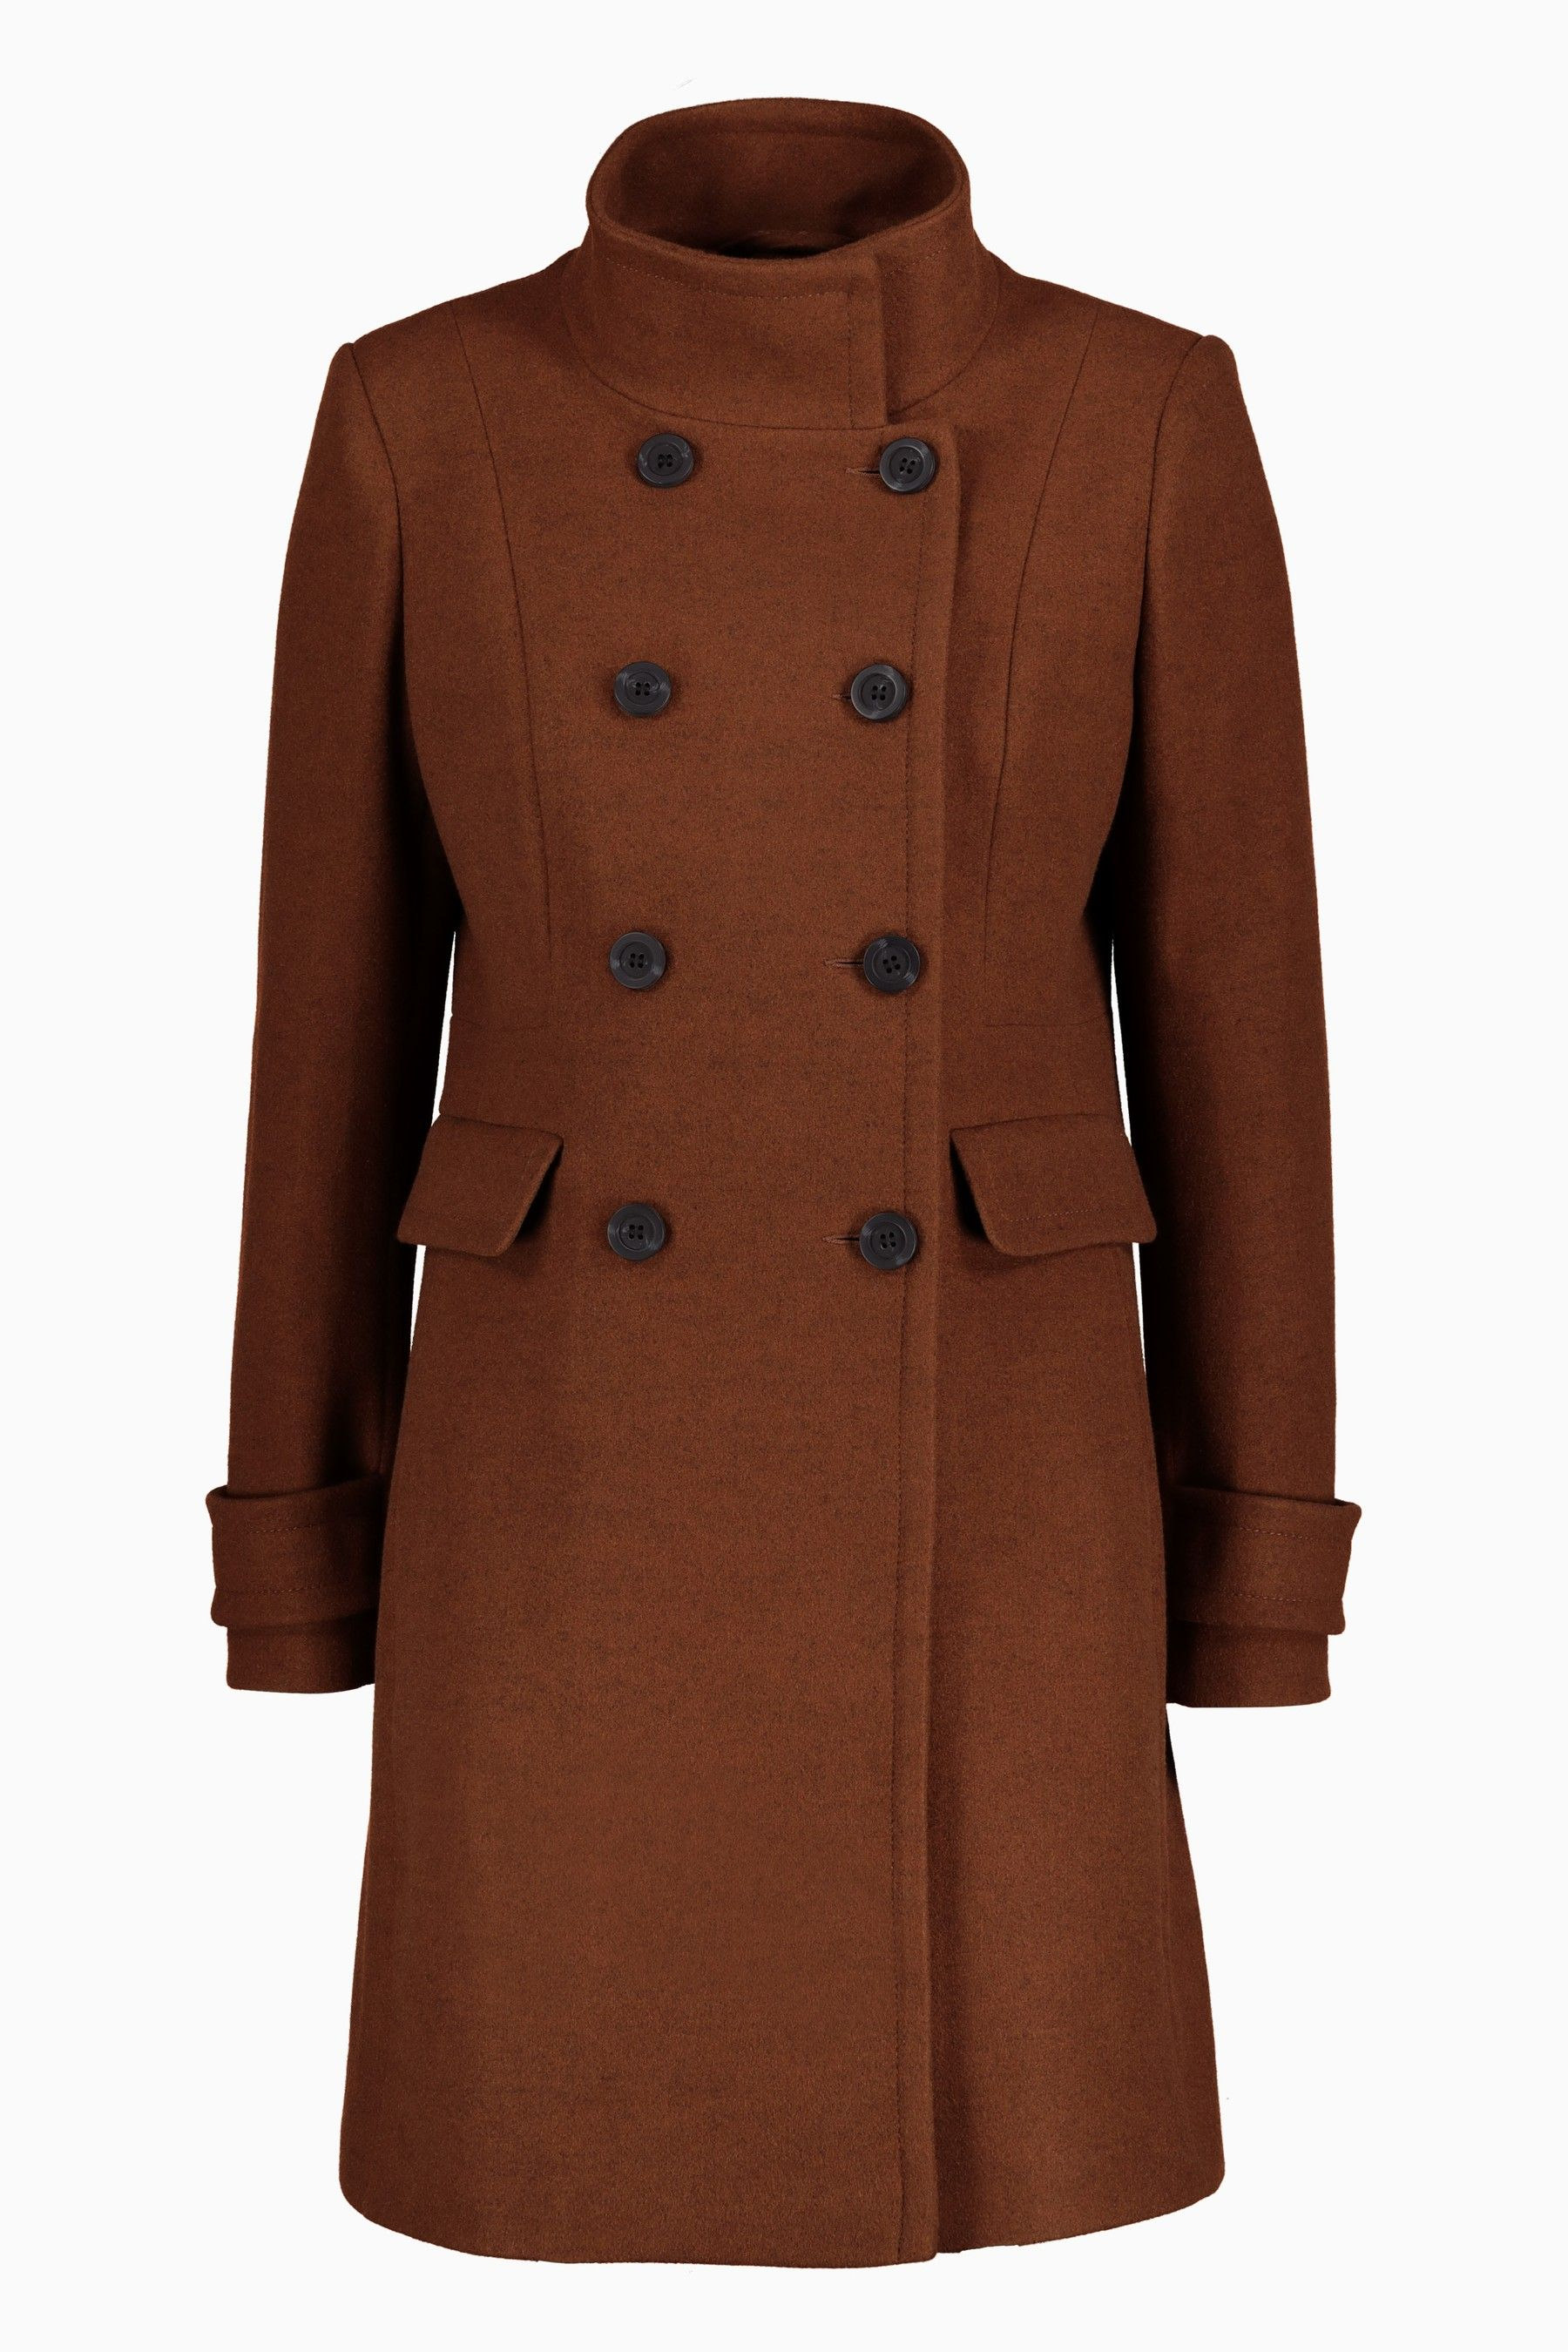 2bebb5e55103 Womens Next Tobacco Funnel Neck Coat - Brown   Products in 2019 ...